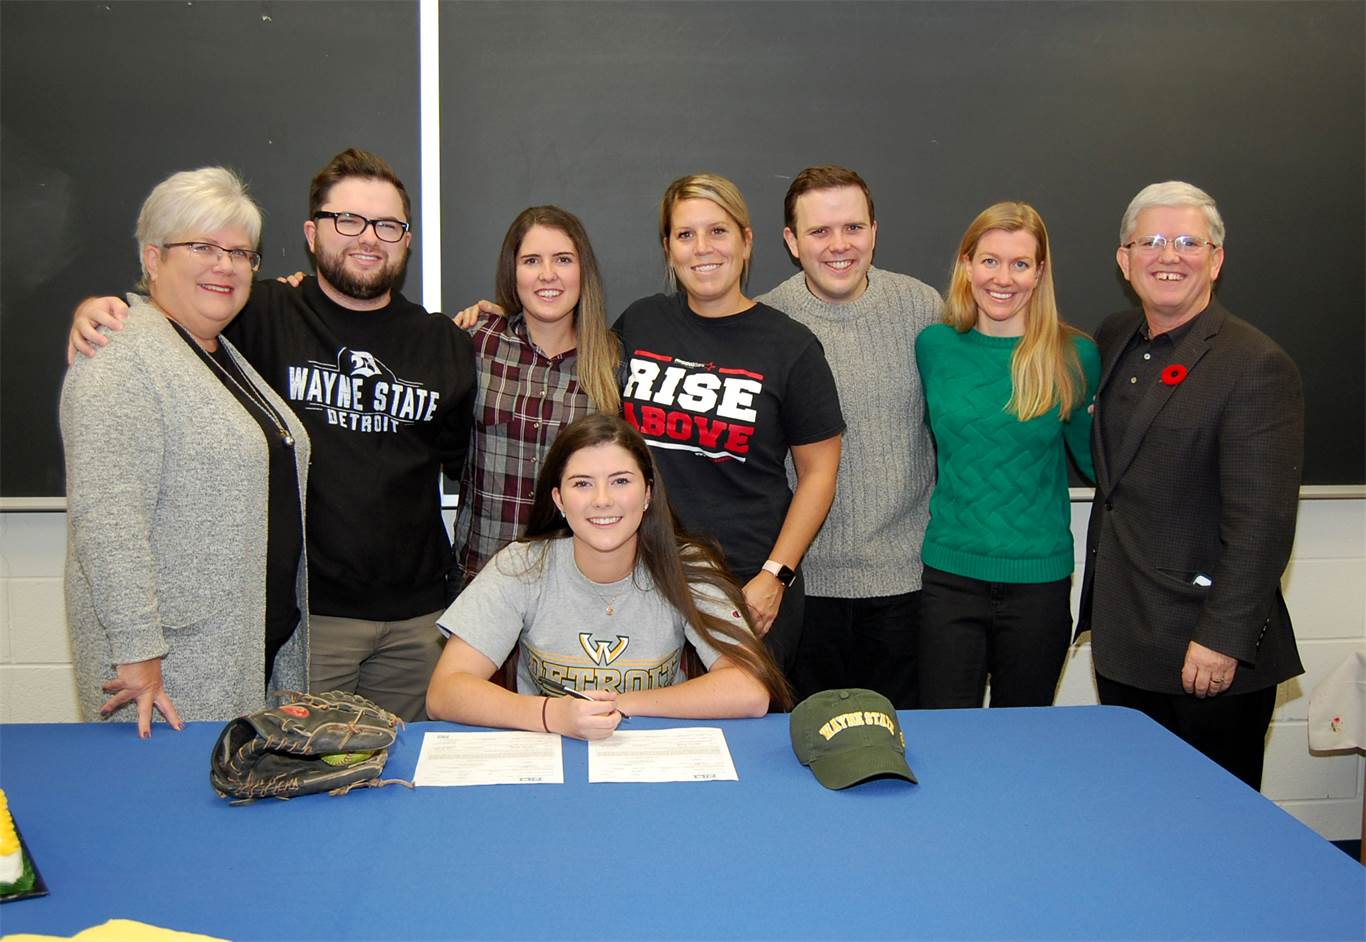 Monica Daly receives softball scholarship to Wayne State